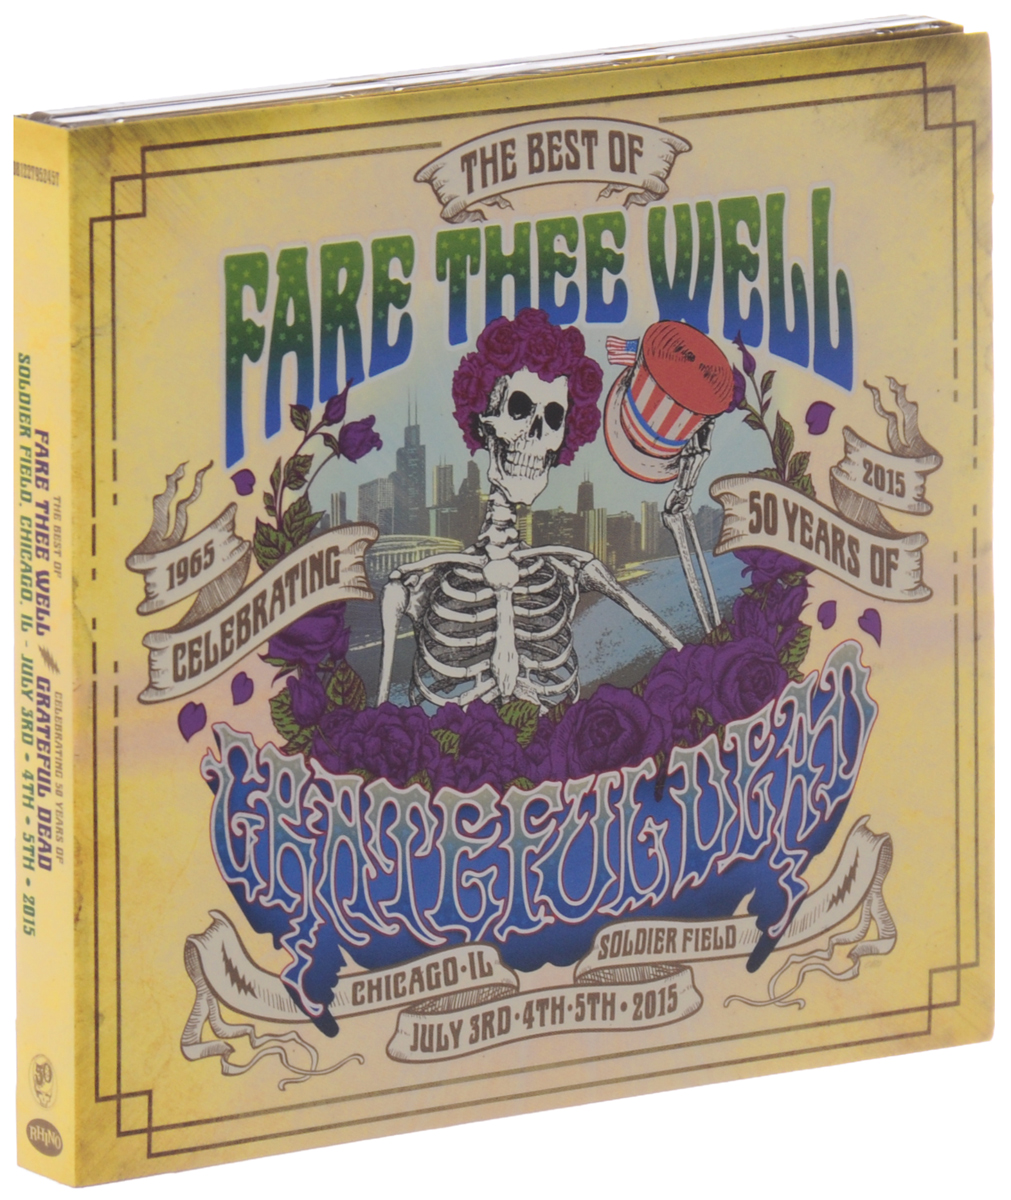 The Grateful Dead Grateful Dead. Fare Thee Well Celebrating 50 Years Of Grateful Dead (2 CD) seun odumbo a grateful heart